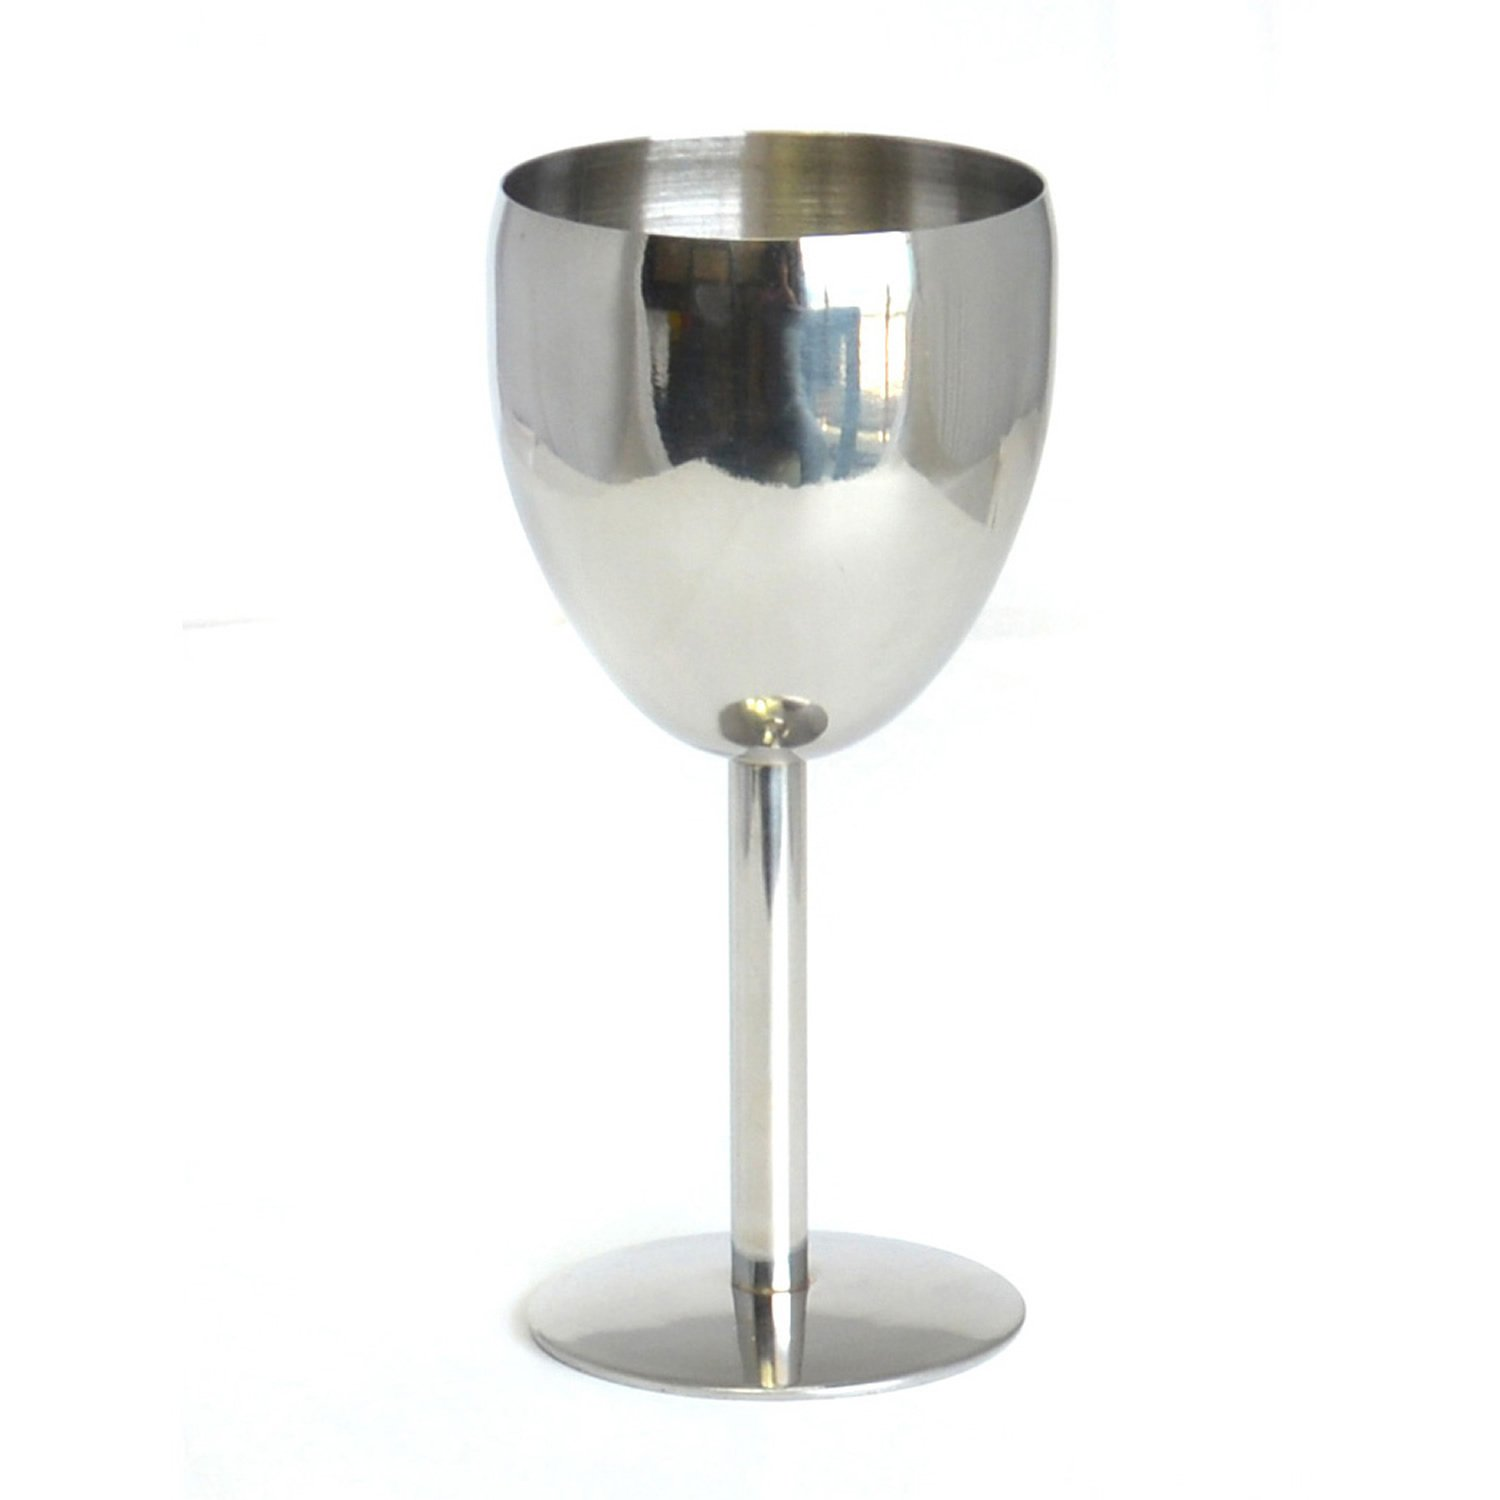 HUPPYNUTS GOBLETS & CHALICES Stainless Steel Wine Glasses, Coupe Champagne Wine Goblet, 6 Ounces GIVESURPRISE UK LTD